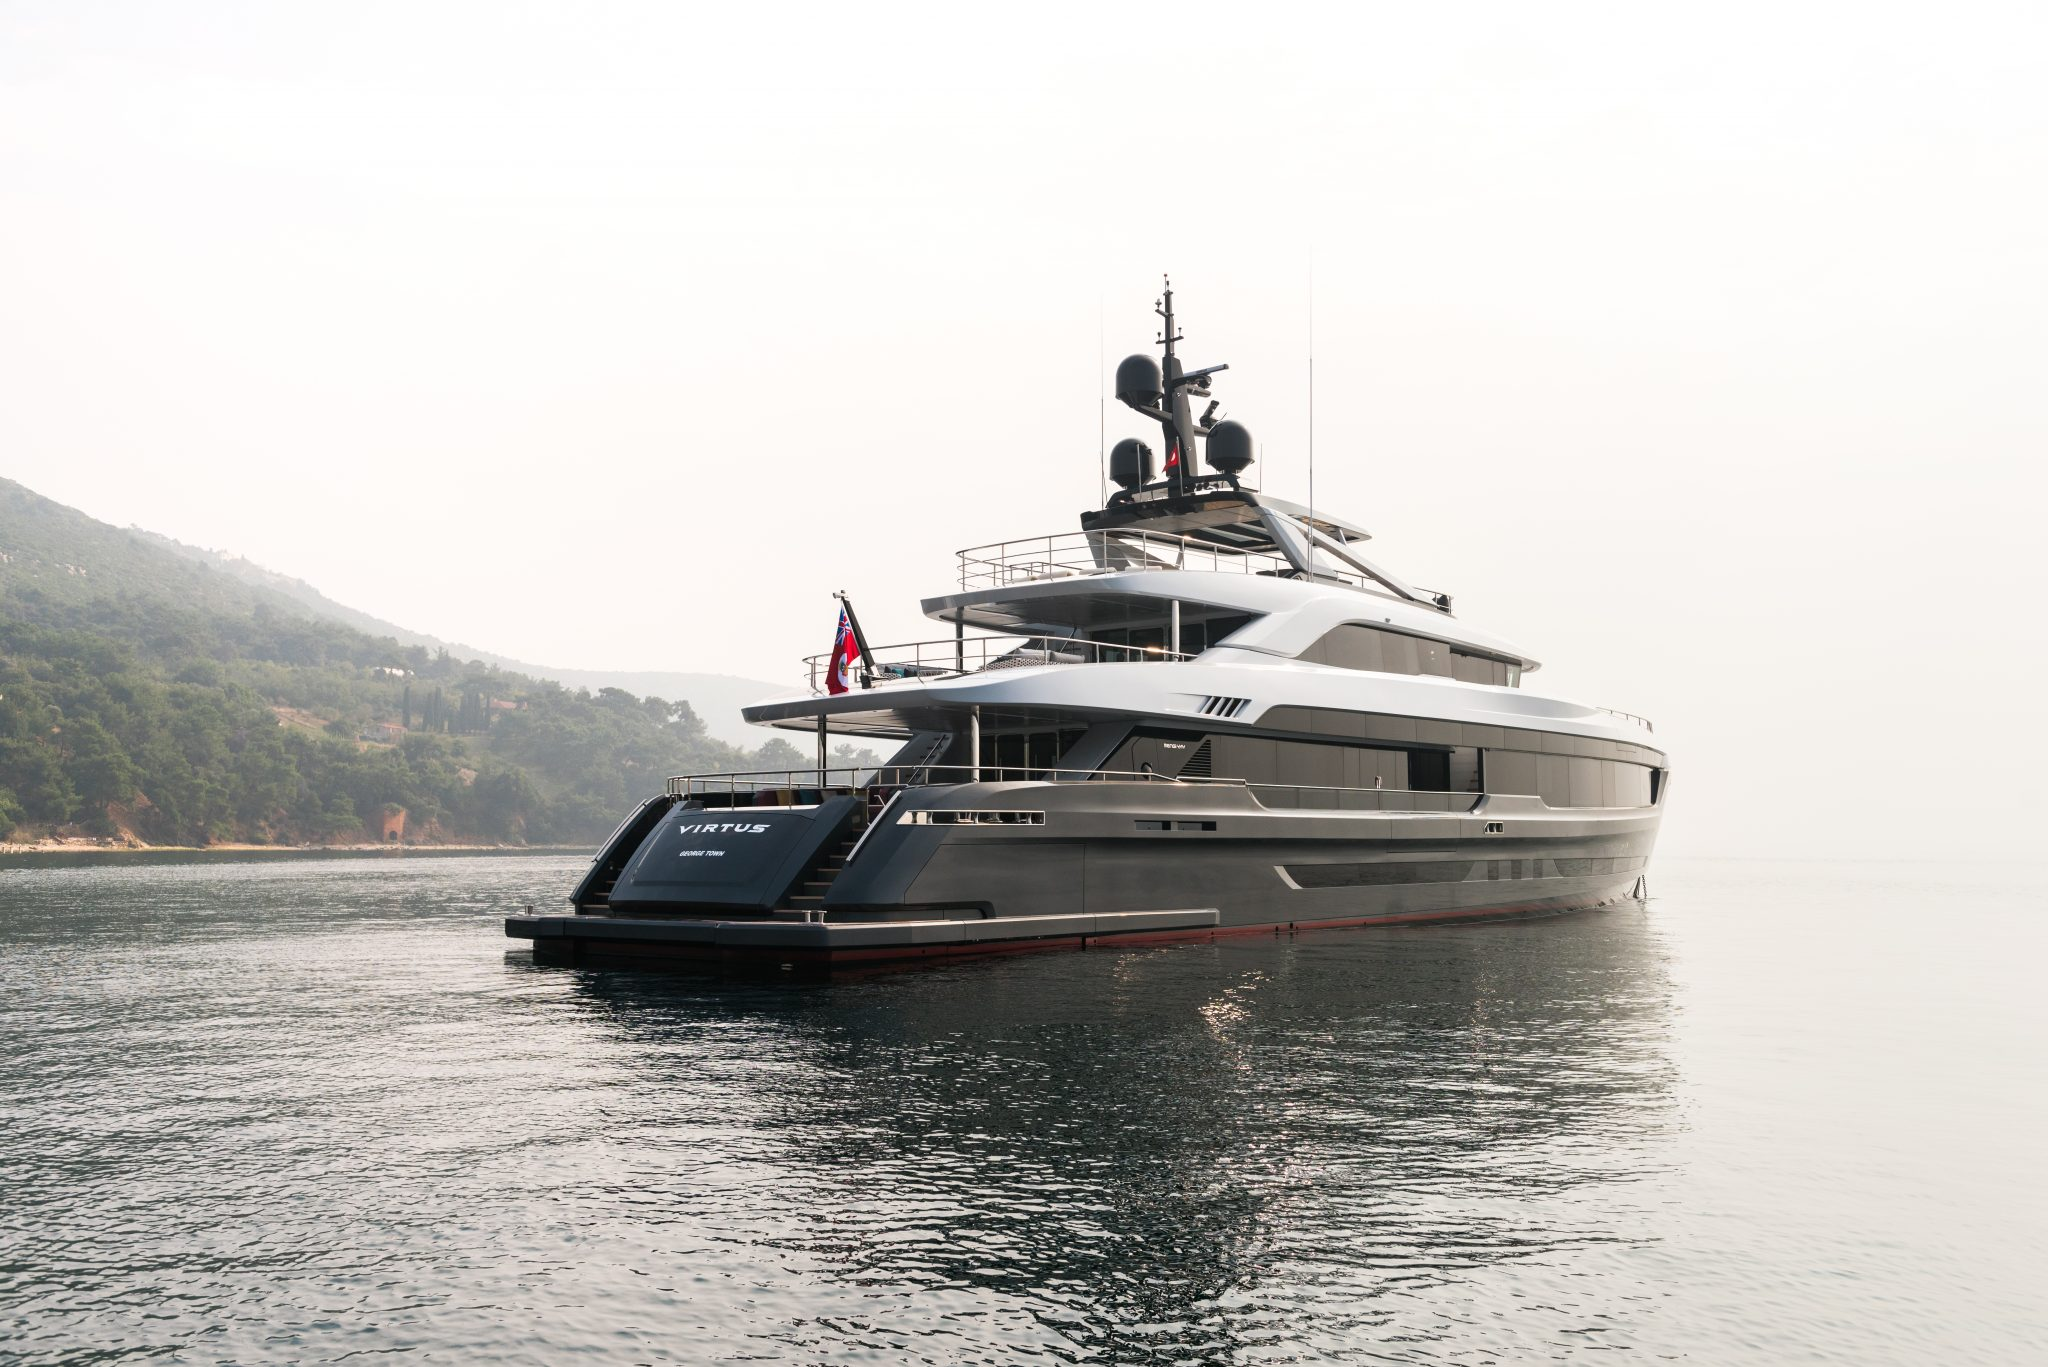 Virtus 44m features a beach club which provides 60 meter square area for leisure activities